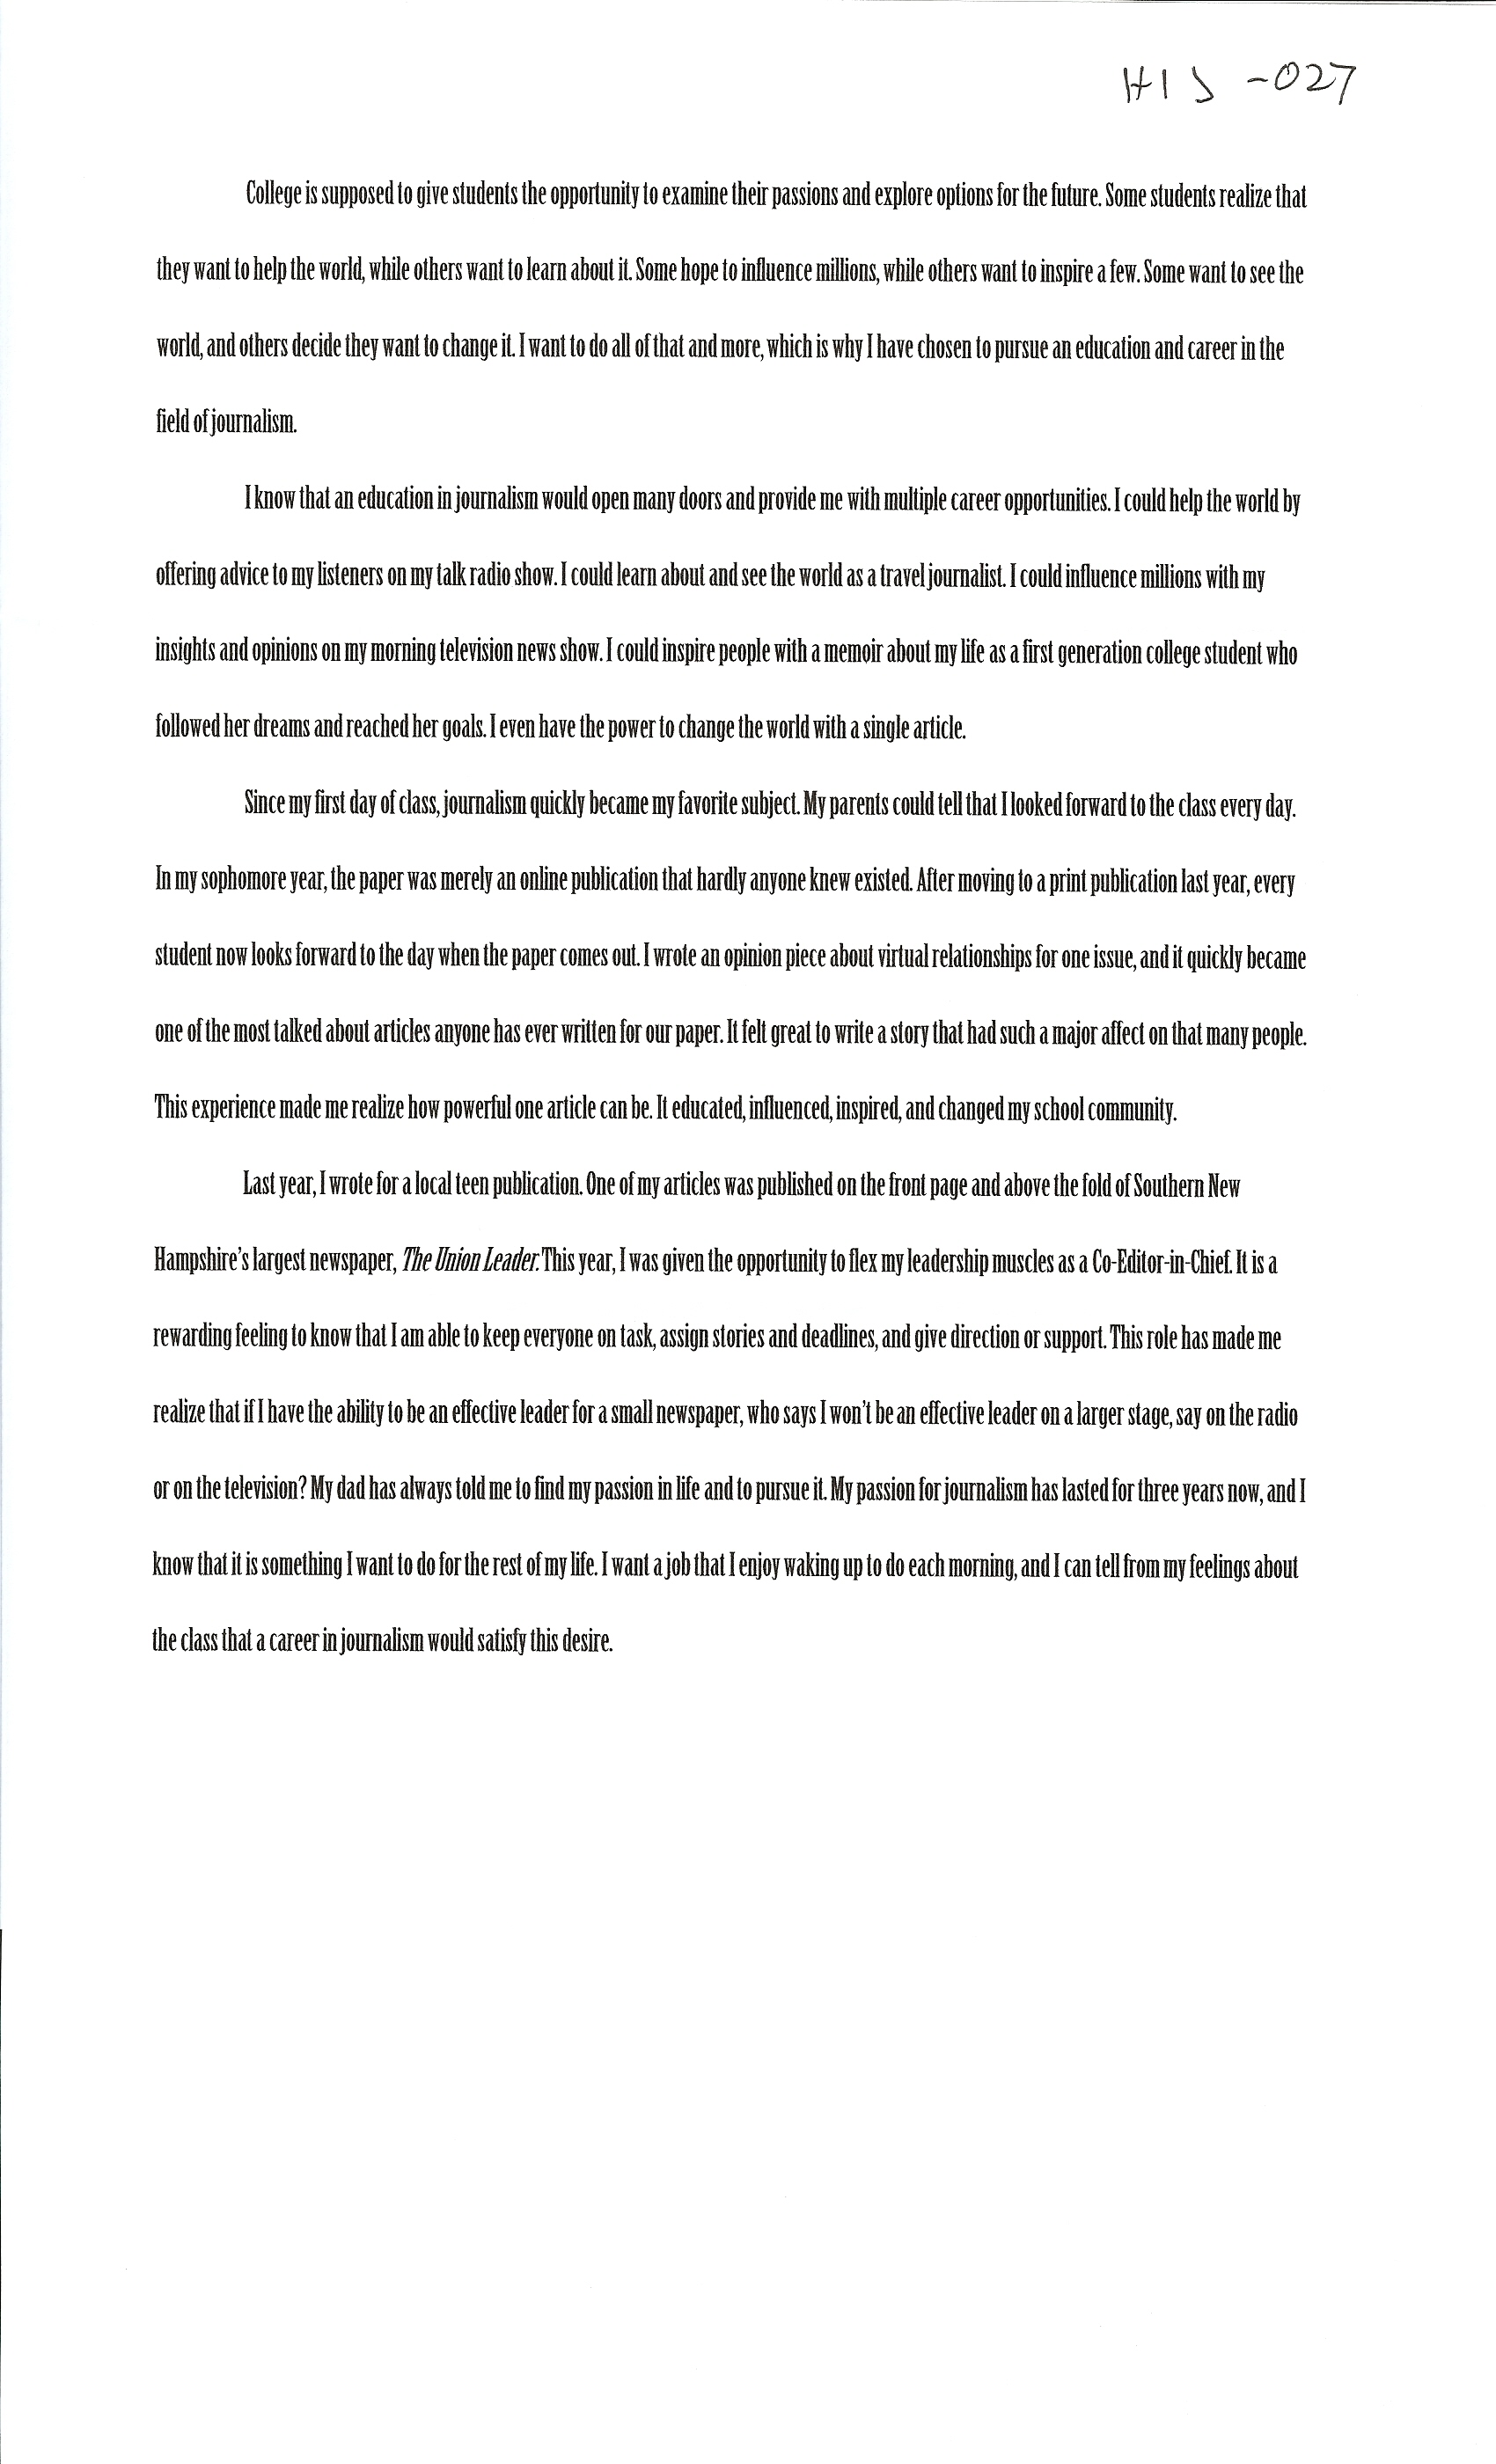 Sample Introduction Of An Essay Cover Letter For A Change Of Career Essay Questions For The Giver also Human Rights Violations Essay Can T Write My Essay Write My Papers Request Is Esay To Complete  Argumentative Essay Internet